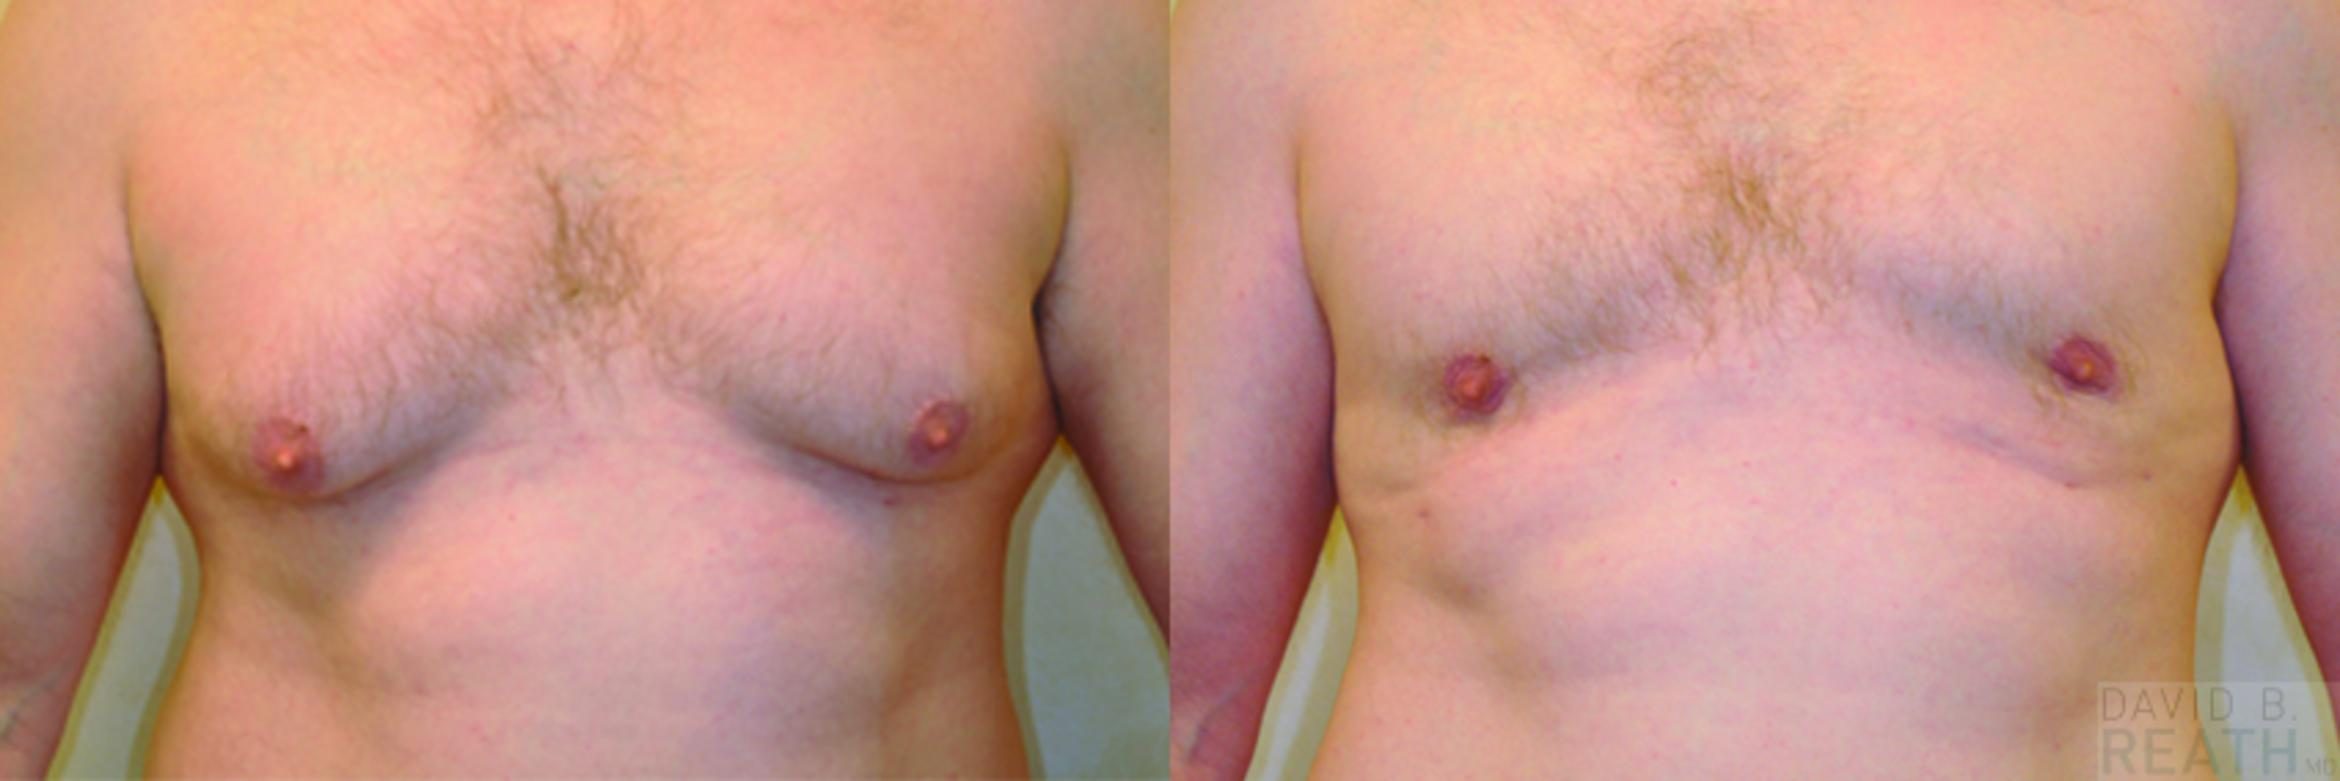 Correction of Gynecomastia (Male Chest Reduction) Before & After Photo | Knoxville, Tennessee | David B. Reath, MD